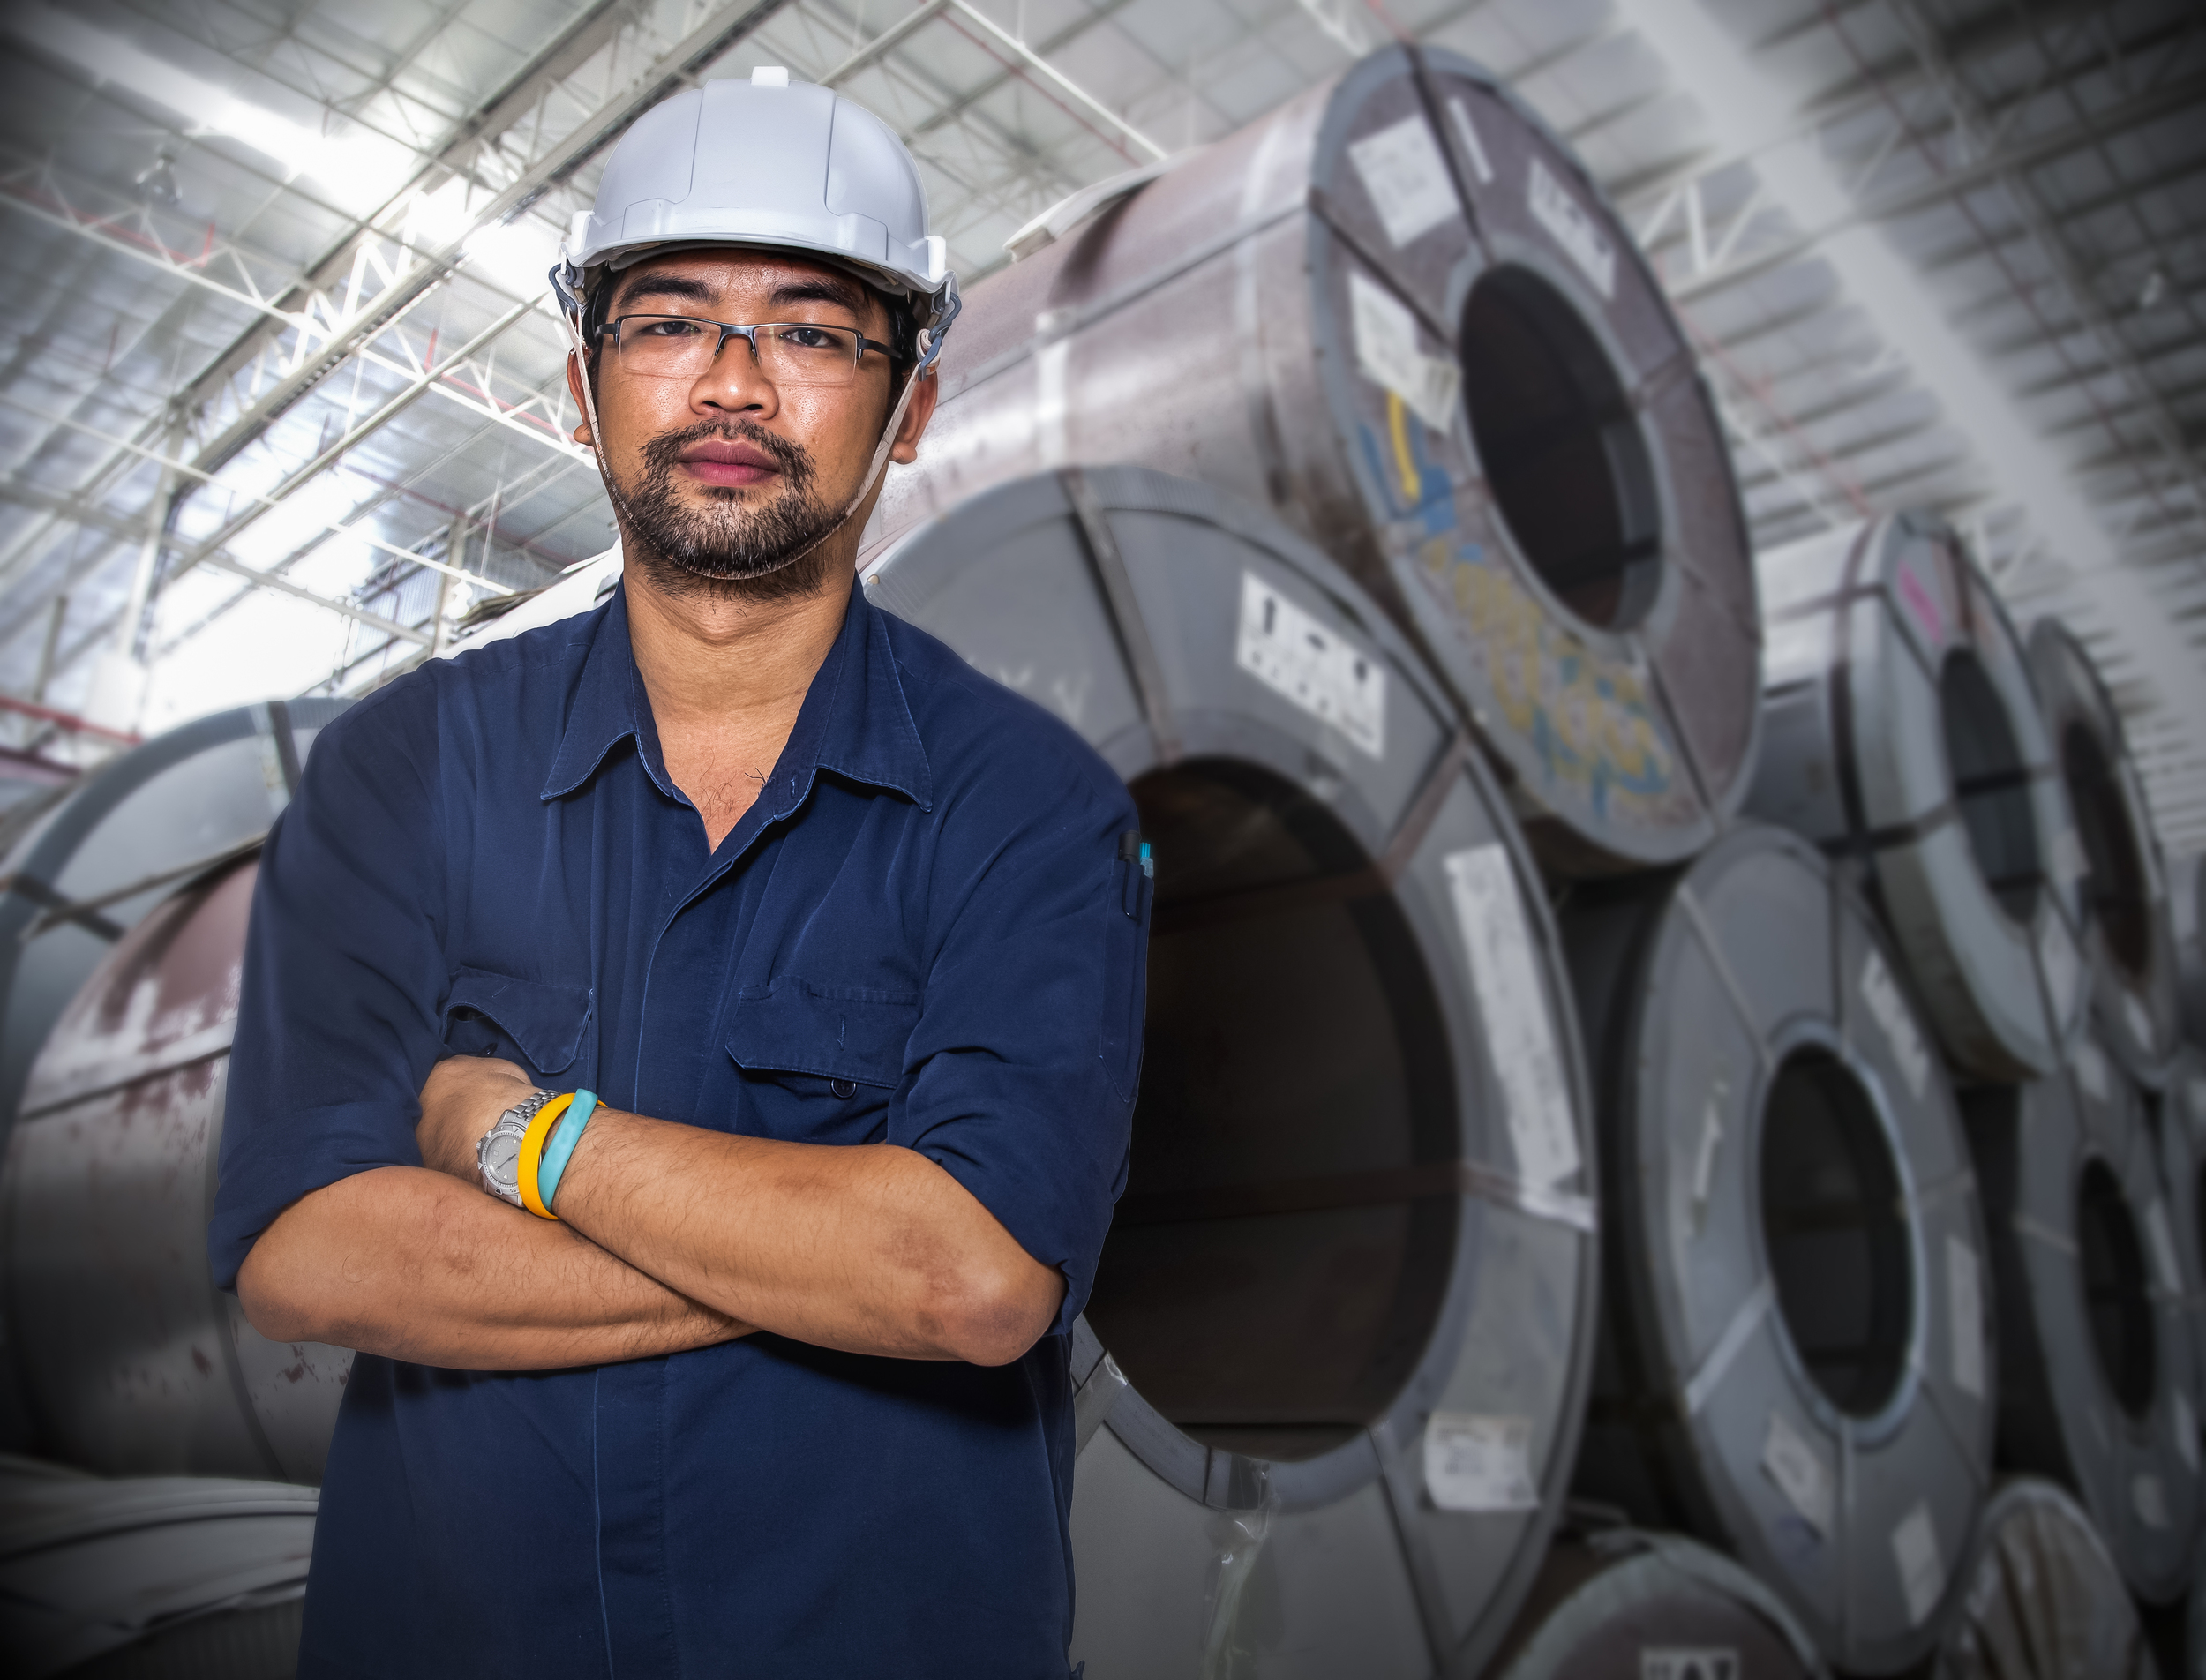 worker with tubes.jpg